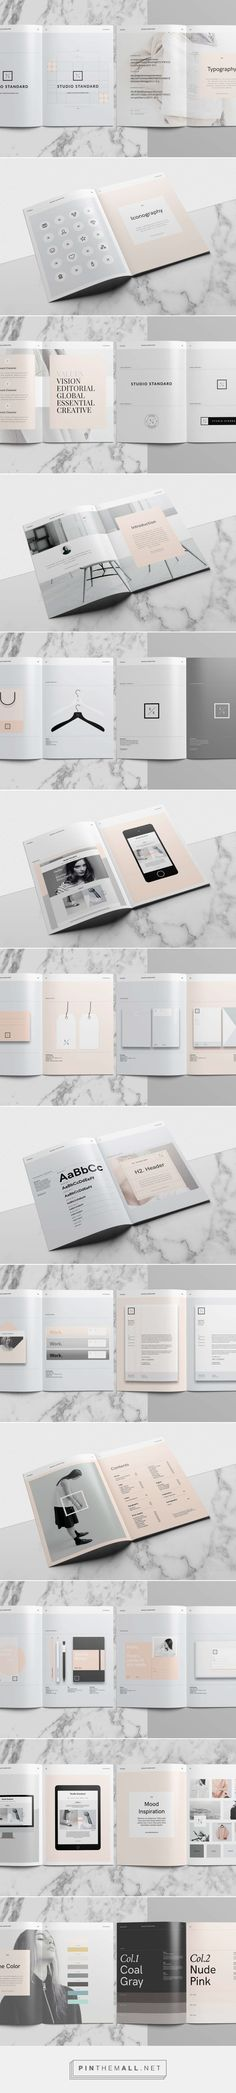 Design guidelines: Studio Standards | Abduzeedo Design Inspiration - created via https://pinthemall.net